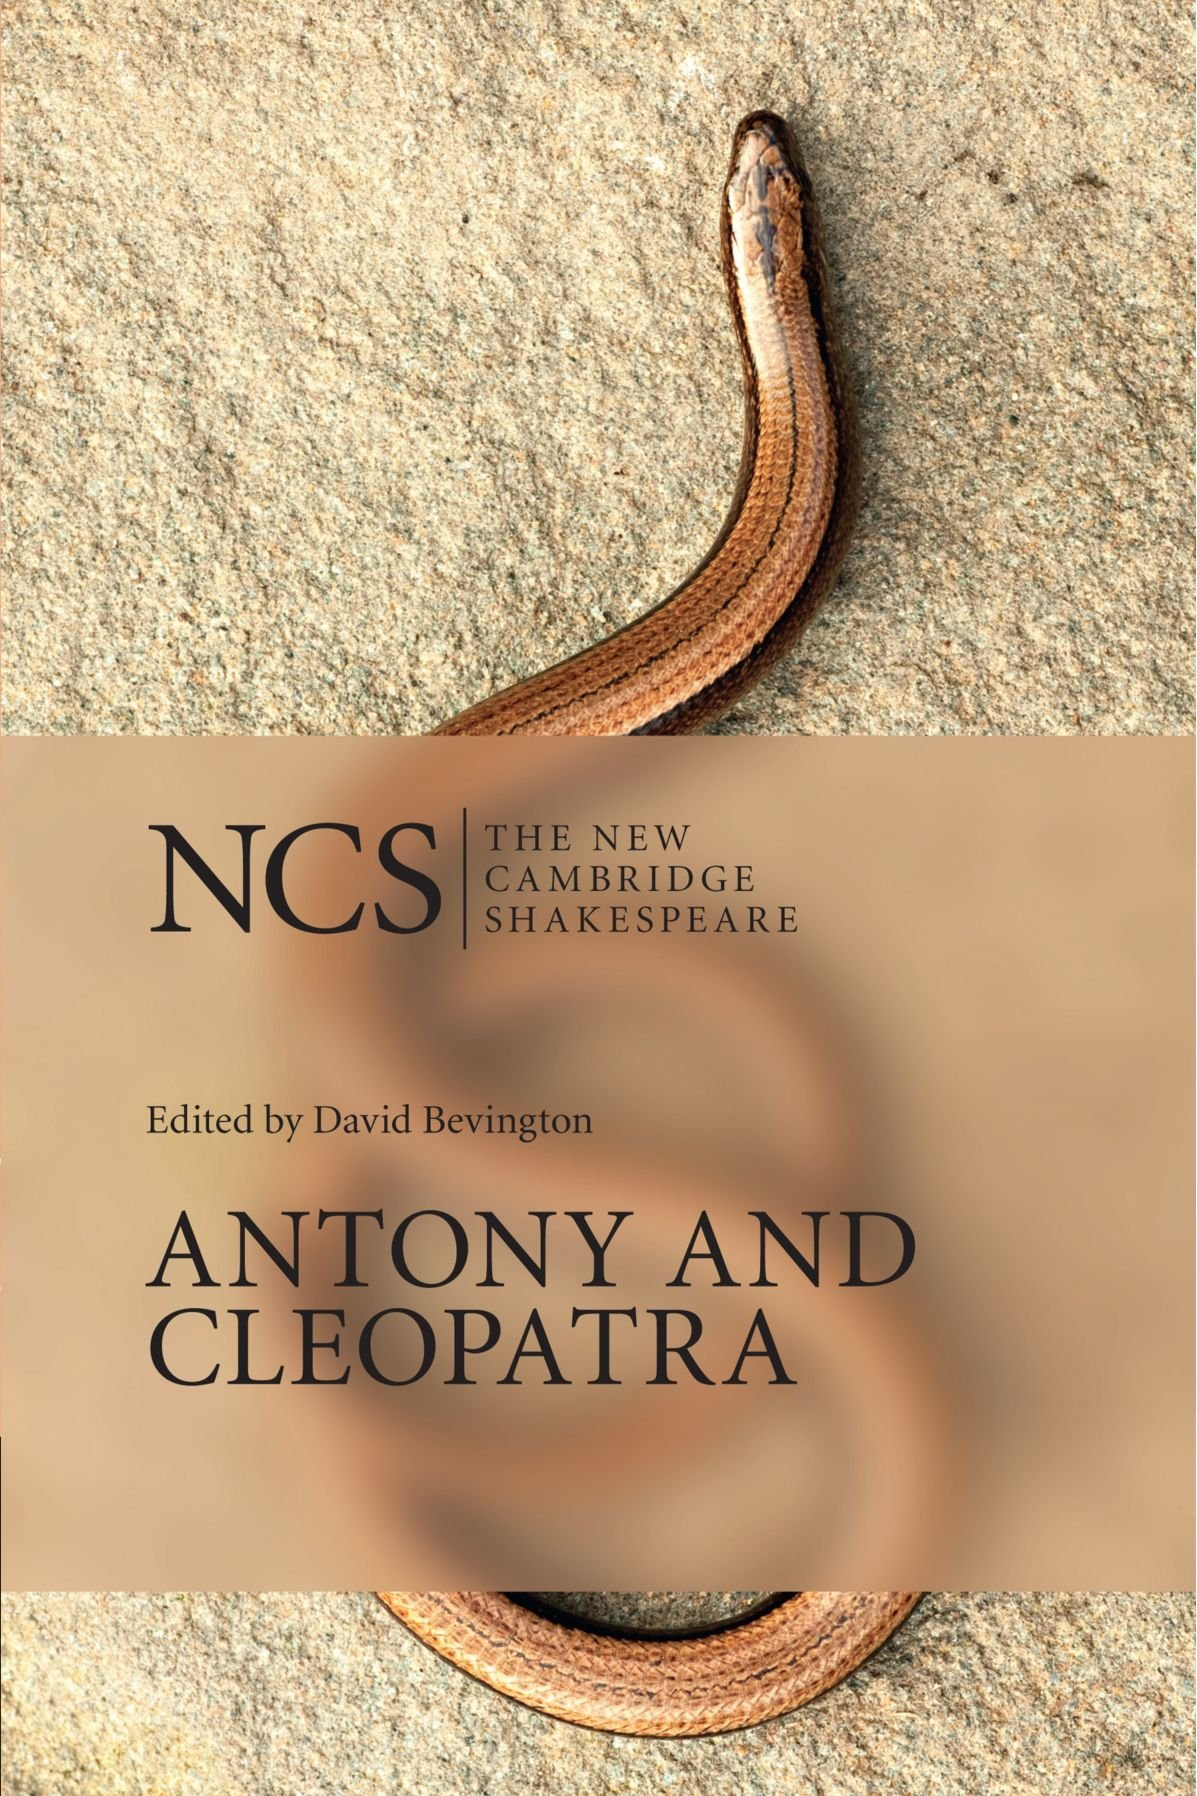 antony and cleopatra the new cambridge shakespeare amazon co uk antony and cleopatra the new cambridge shakespeare amazon co uk david bevington 9780521612876 books